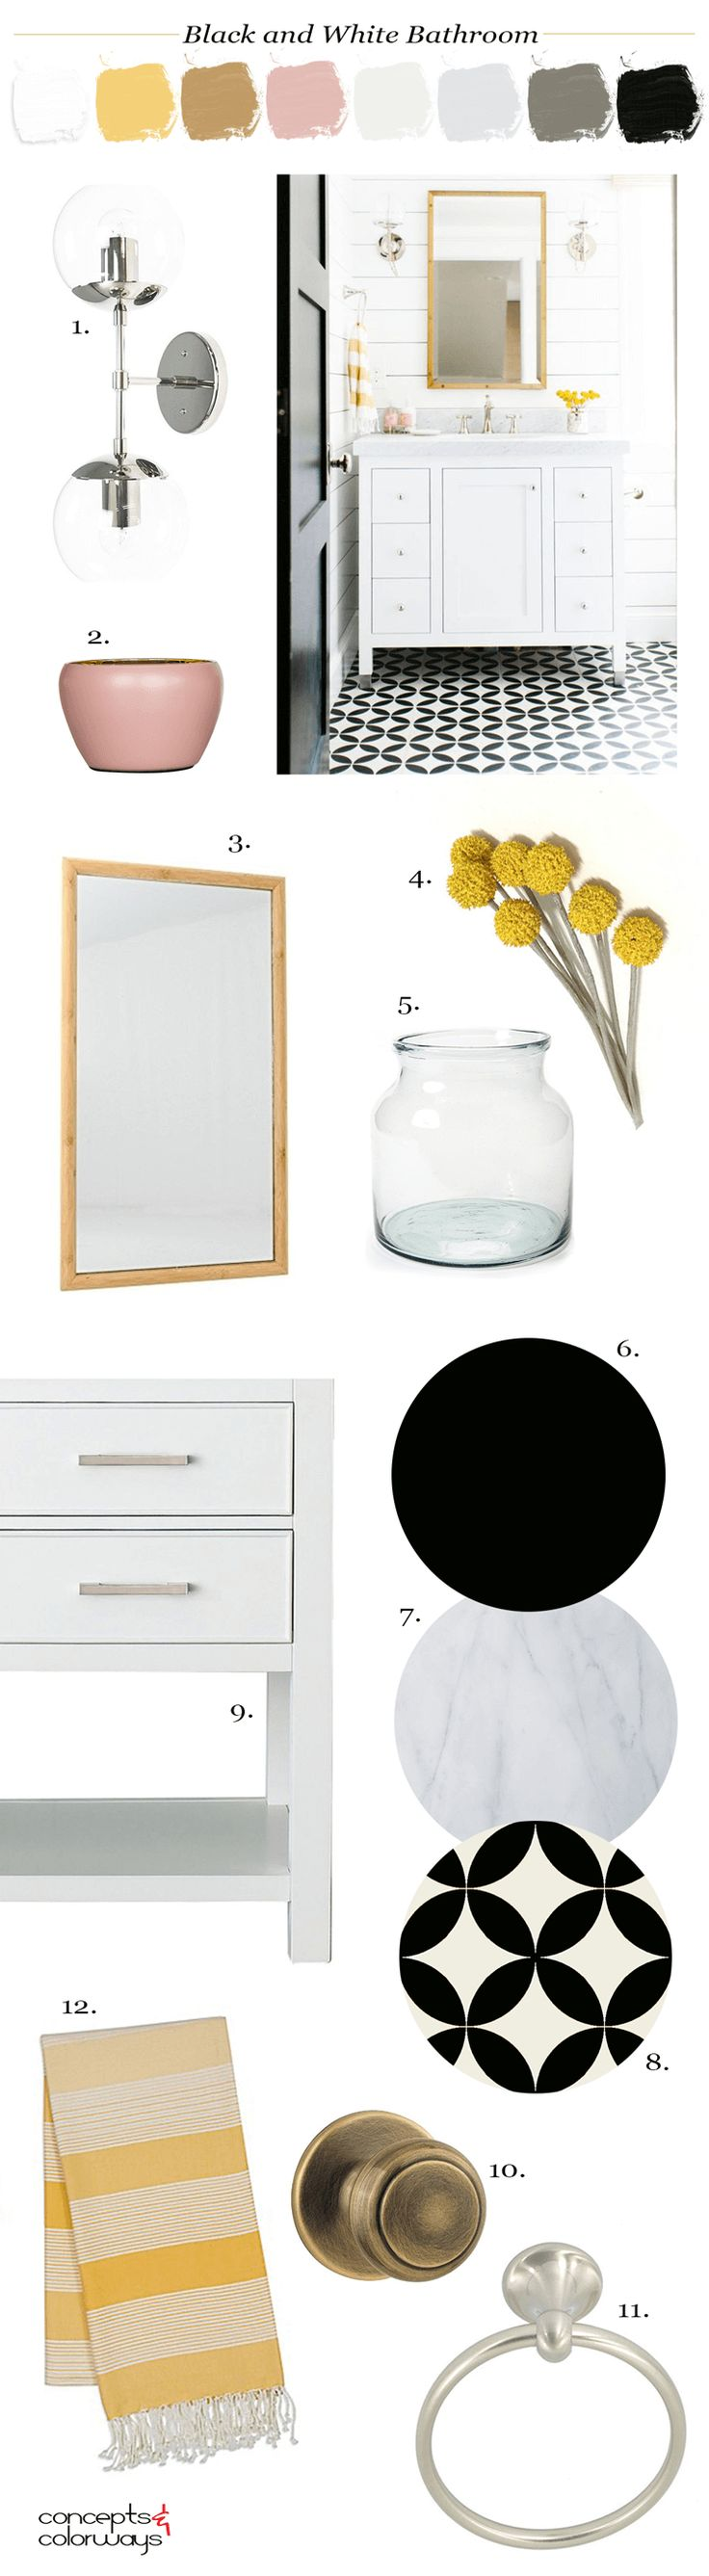 black and white bathroom, black and white tile, black door, pink and yellow, white marble, white shiplap, yellow flowers, white vanity cabinet, glass globe wall sconce, blush pink, bamboo mirror, yellow striped towels, towel ring, ochre, black and white, bright yellow, pantone harbor mist